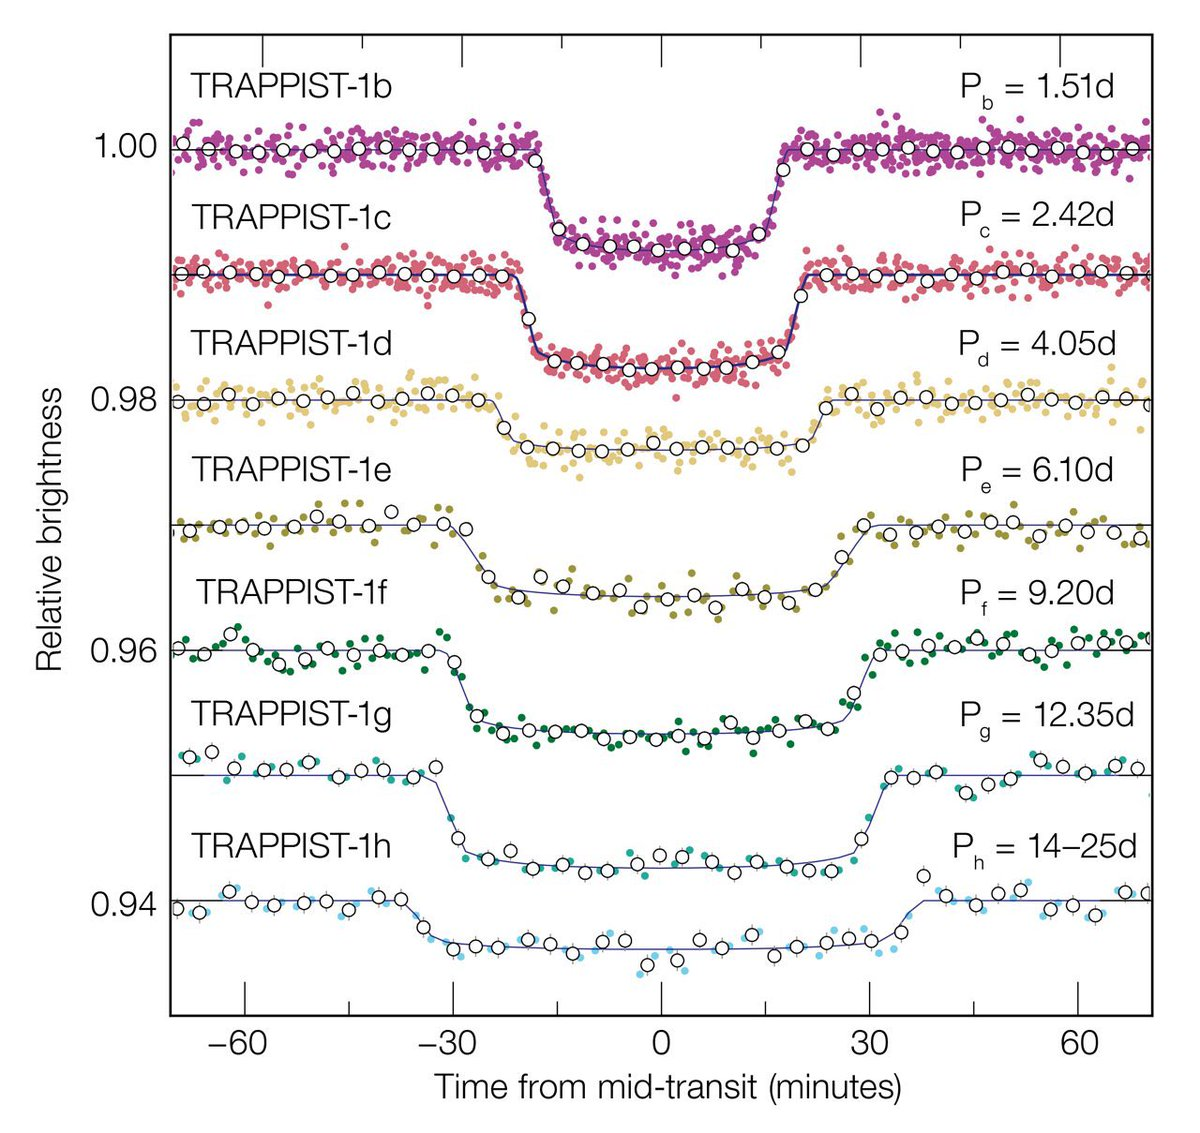 test Twitter Media - As of March 2019 there are 3,925 confirmed exoplanets in the @NASA Exoplanet Archive. @petertgallagher explains how astrophysicists detect these planets by looking at light curves as they transit in front of stars. #DIASdiscovers https://t.co/ZWEMRDrMfy